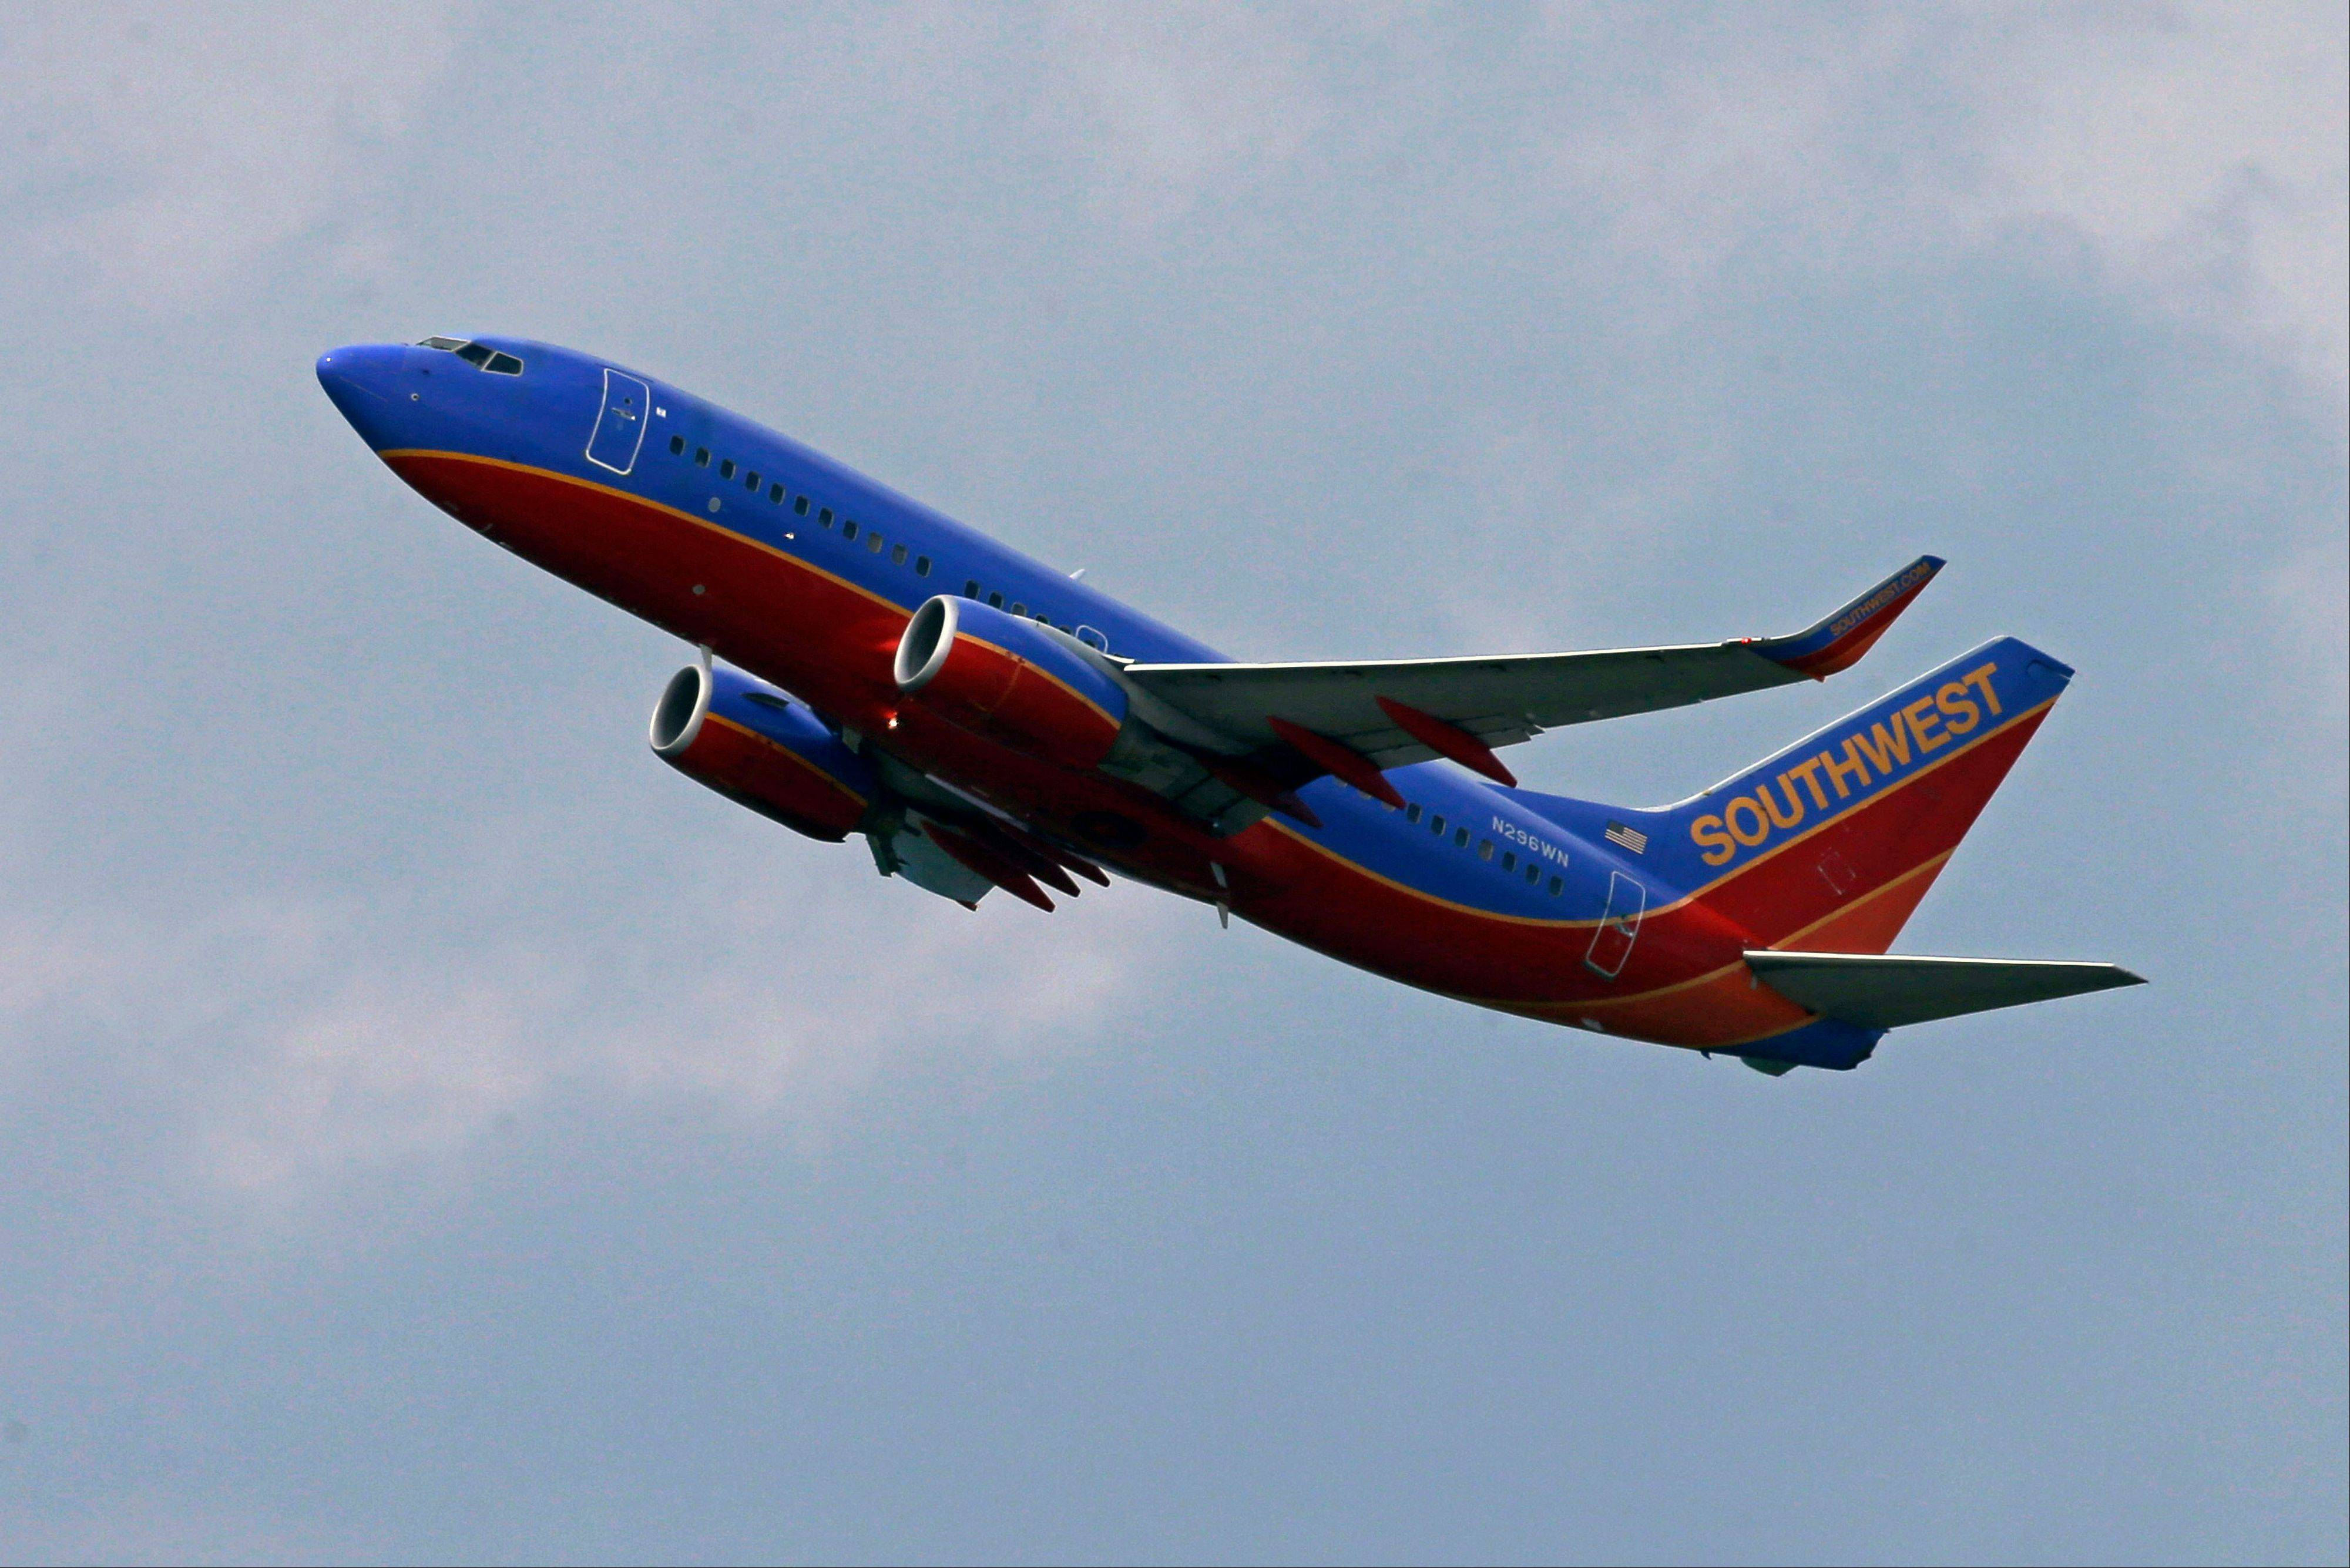 Southwest Airlines is getting a small break at the fuel pump, and that's helping it beat Wall Street expectations for profit.The airline said Thursday that net income in the second quarter was $224 million, or 31 cents per share.